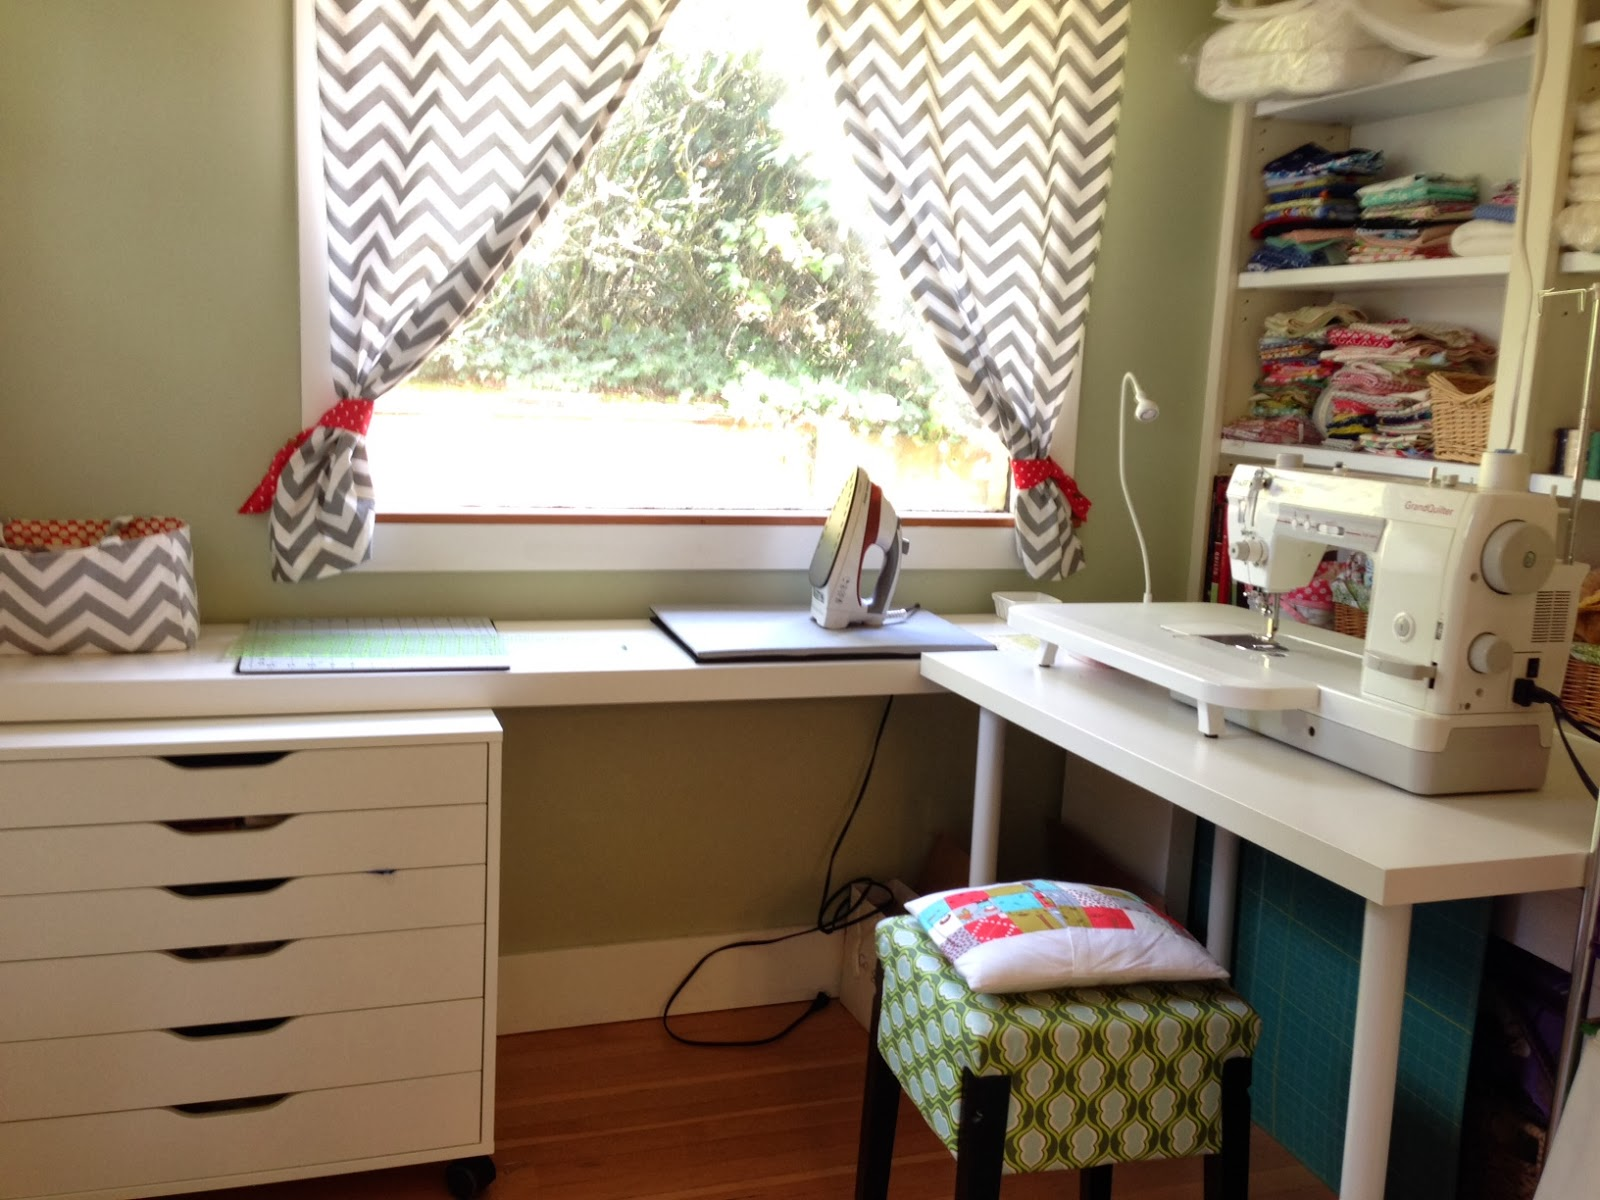 Sewing Room Designs: A Tour Of My Humble Sewing Space